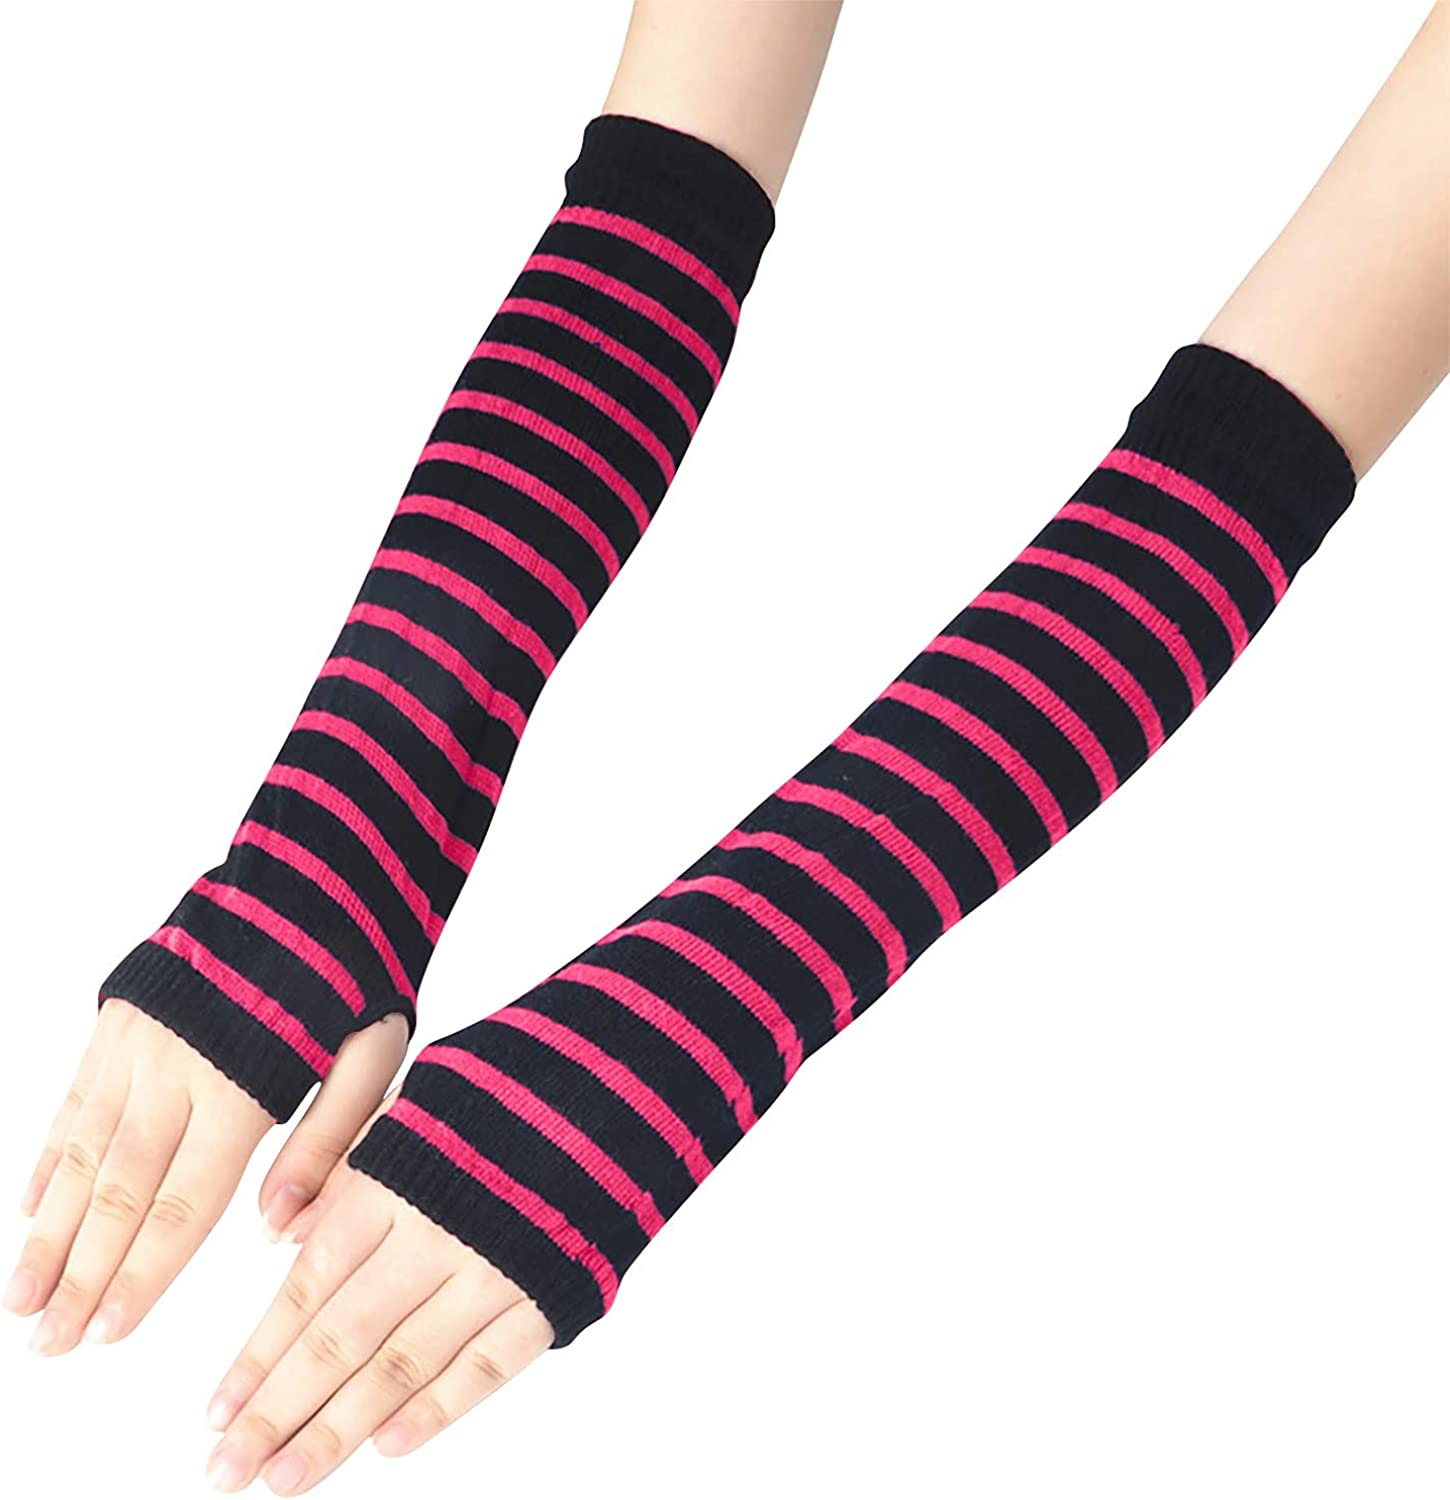 Womens Striped Knitted Fingerless Long Gloves Winter Thumb Hole Stretchy Glove Mittens Punk Gothic Arm Warmer Gloves